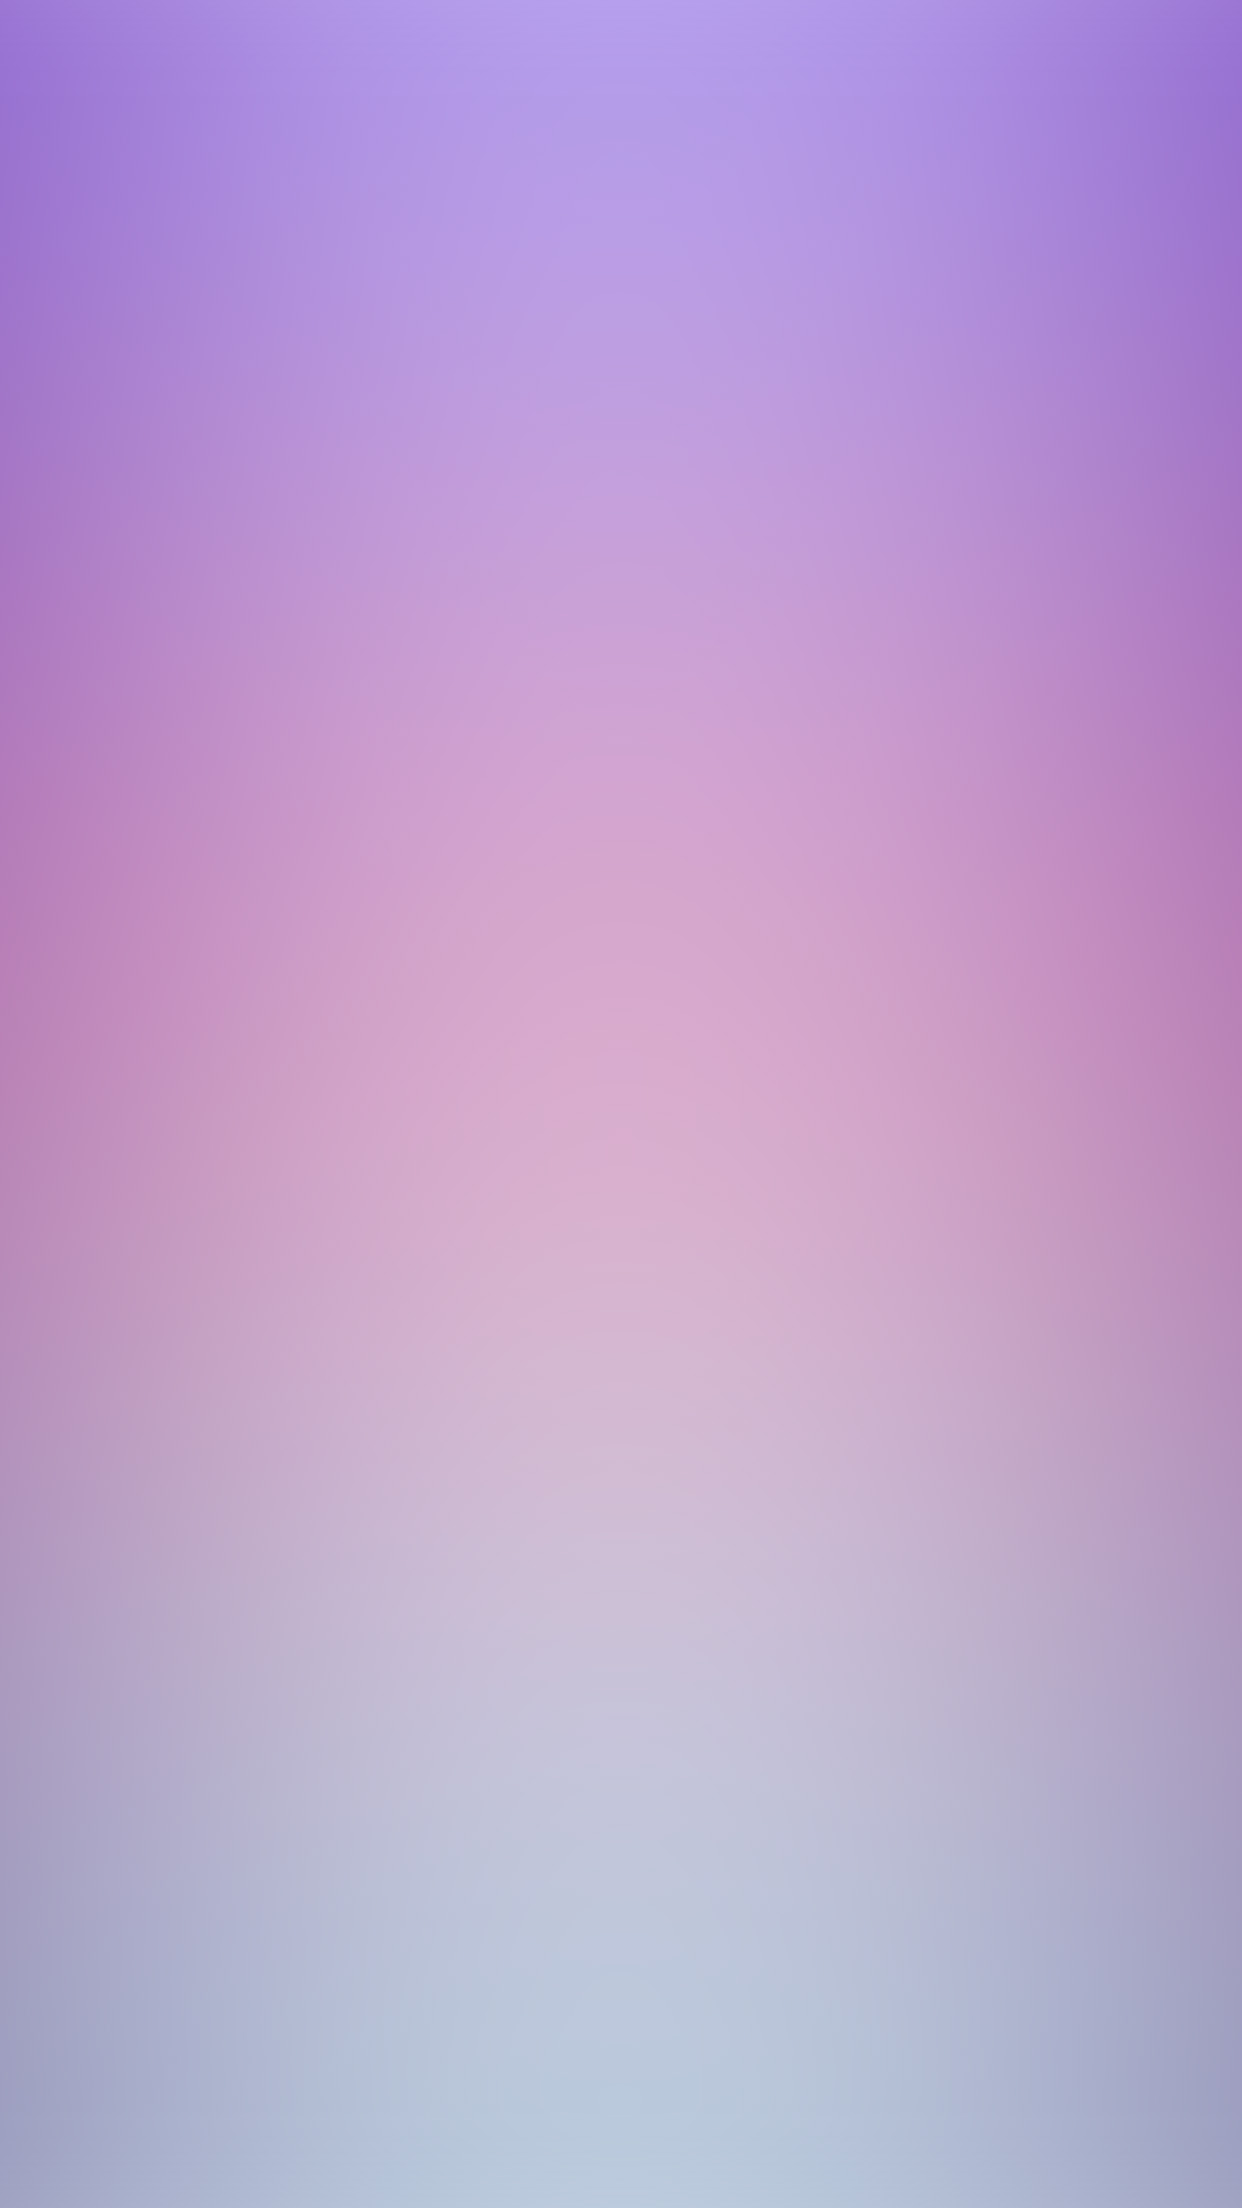 iPhonepapers com   iPhone 8 wallpaper   sj07 purple sky soft pastel blur iPhone 8 Plus